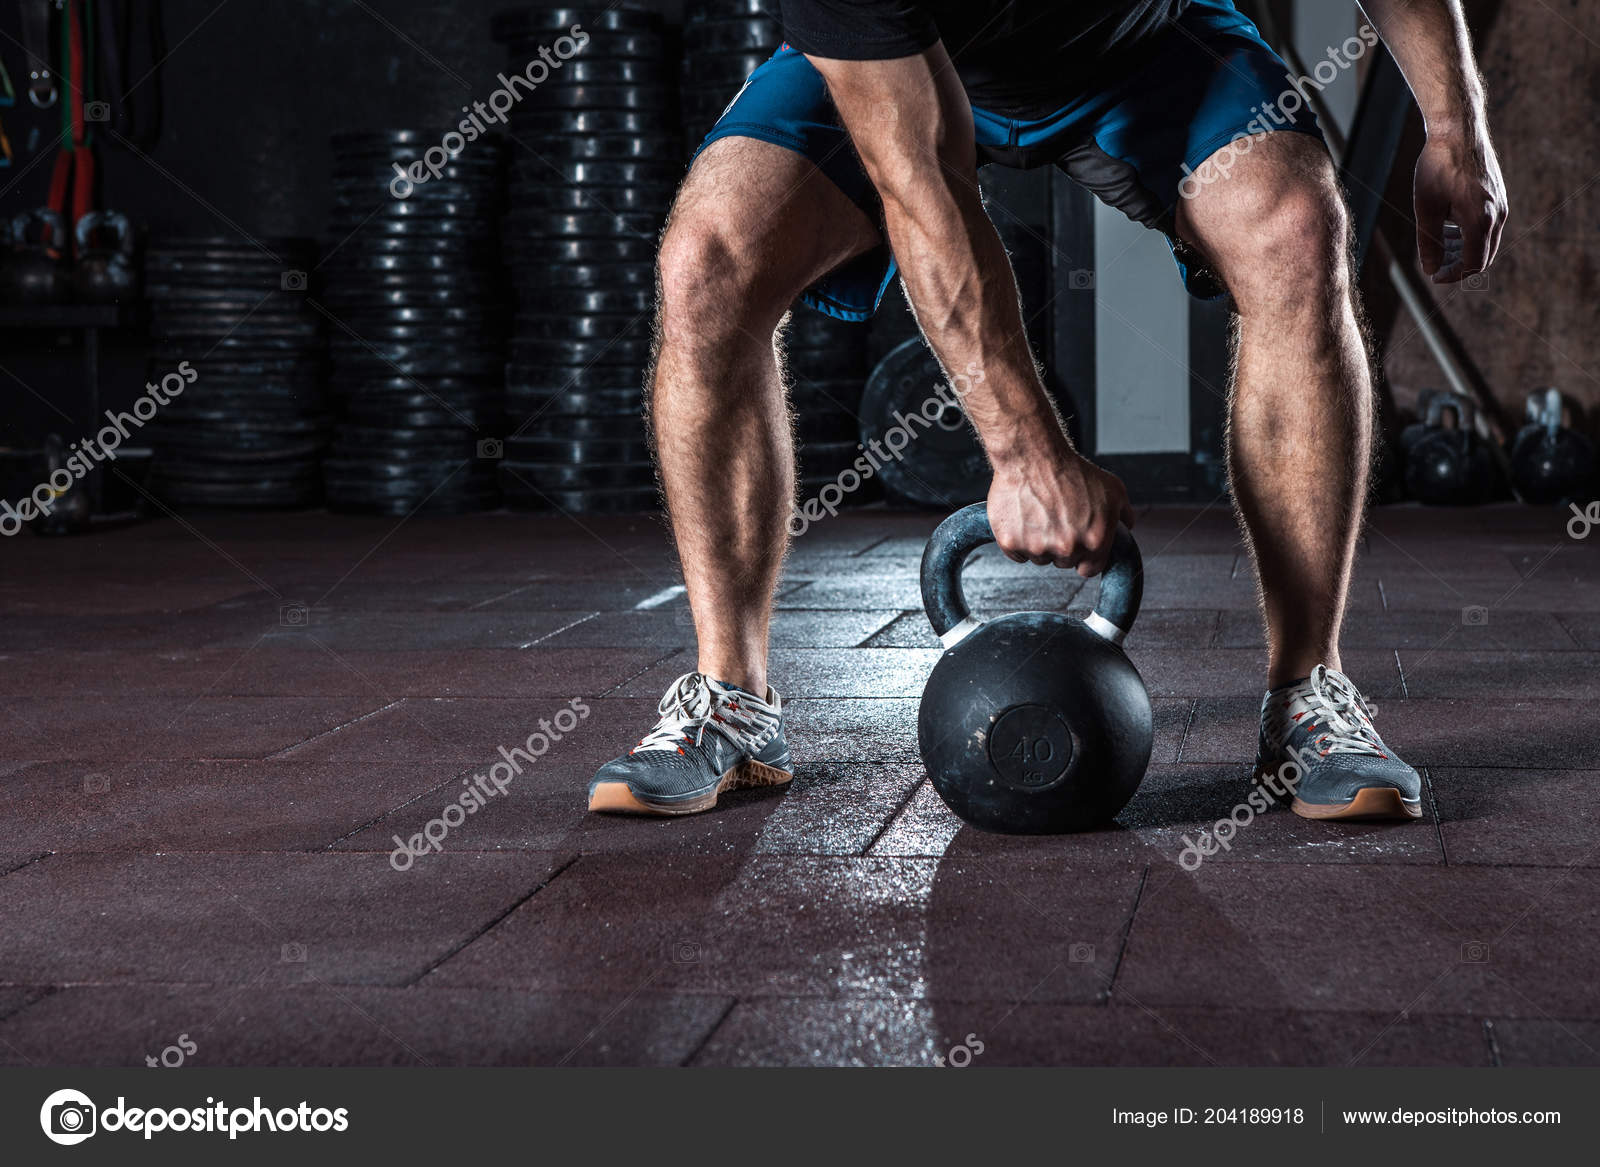 Crossfit Kettlebell Training Gym Athlete Doing Workout Workouts For Beginners Wod Stock Photo